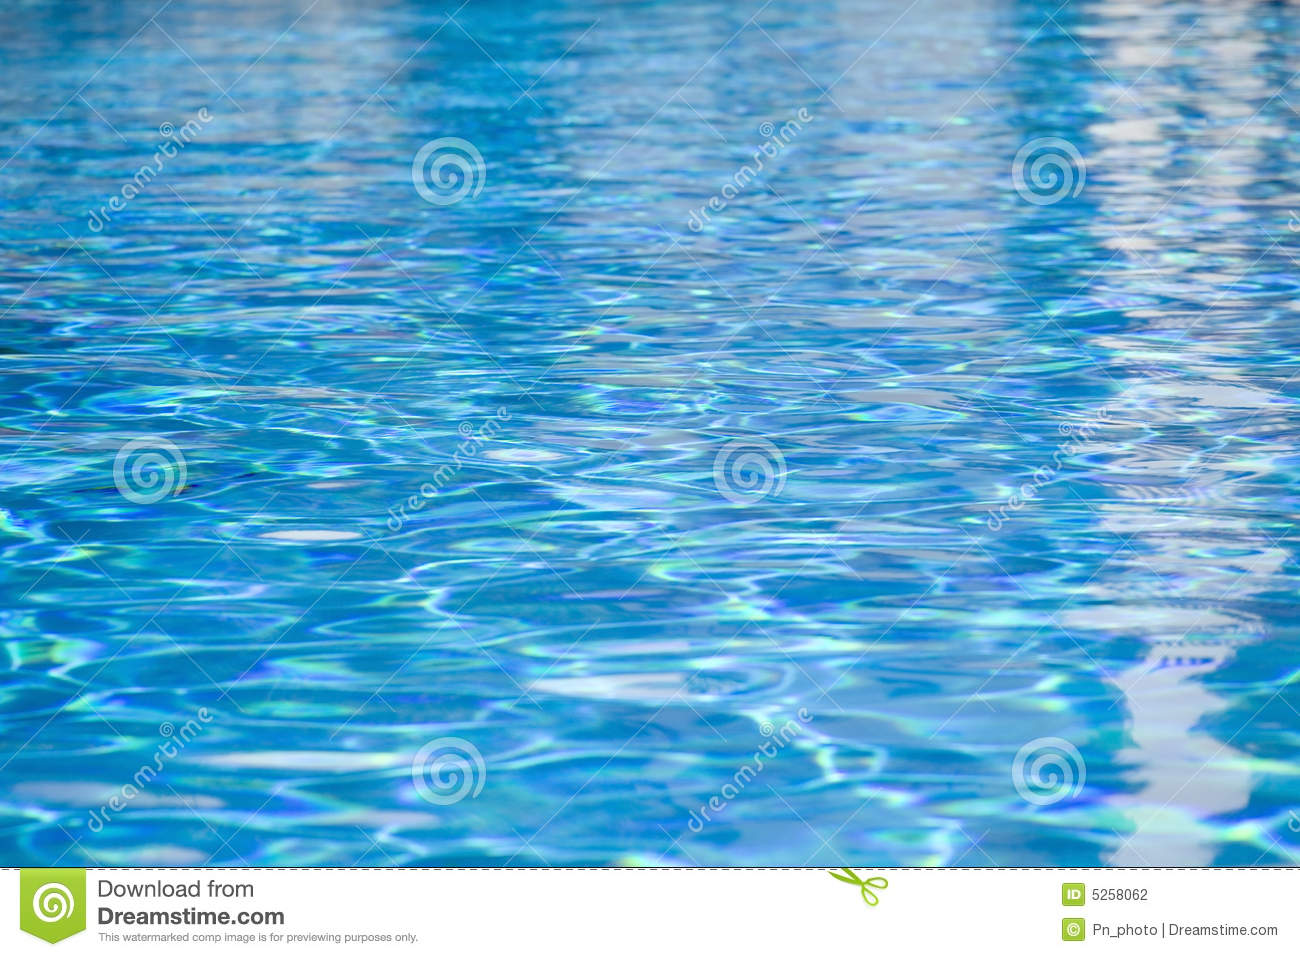 Swimming Pool Background swimming pool background stock photography - image: 5258062